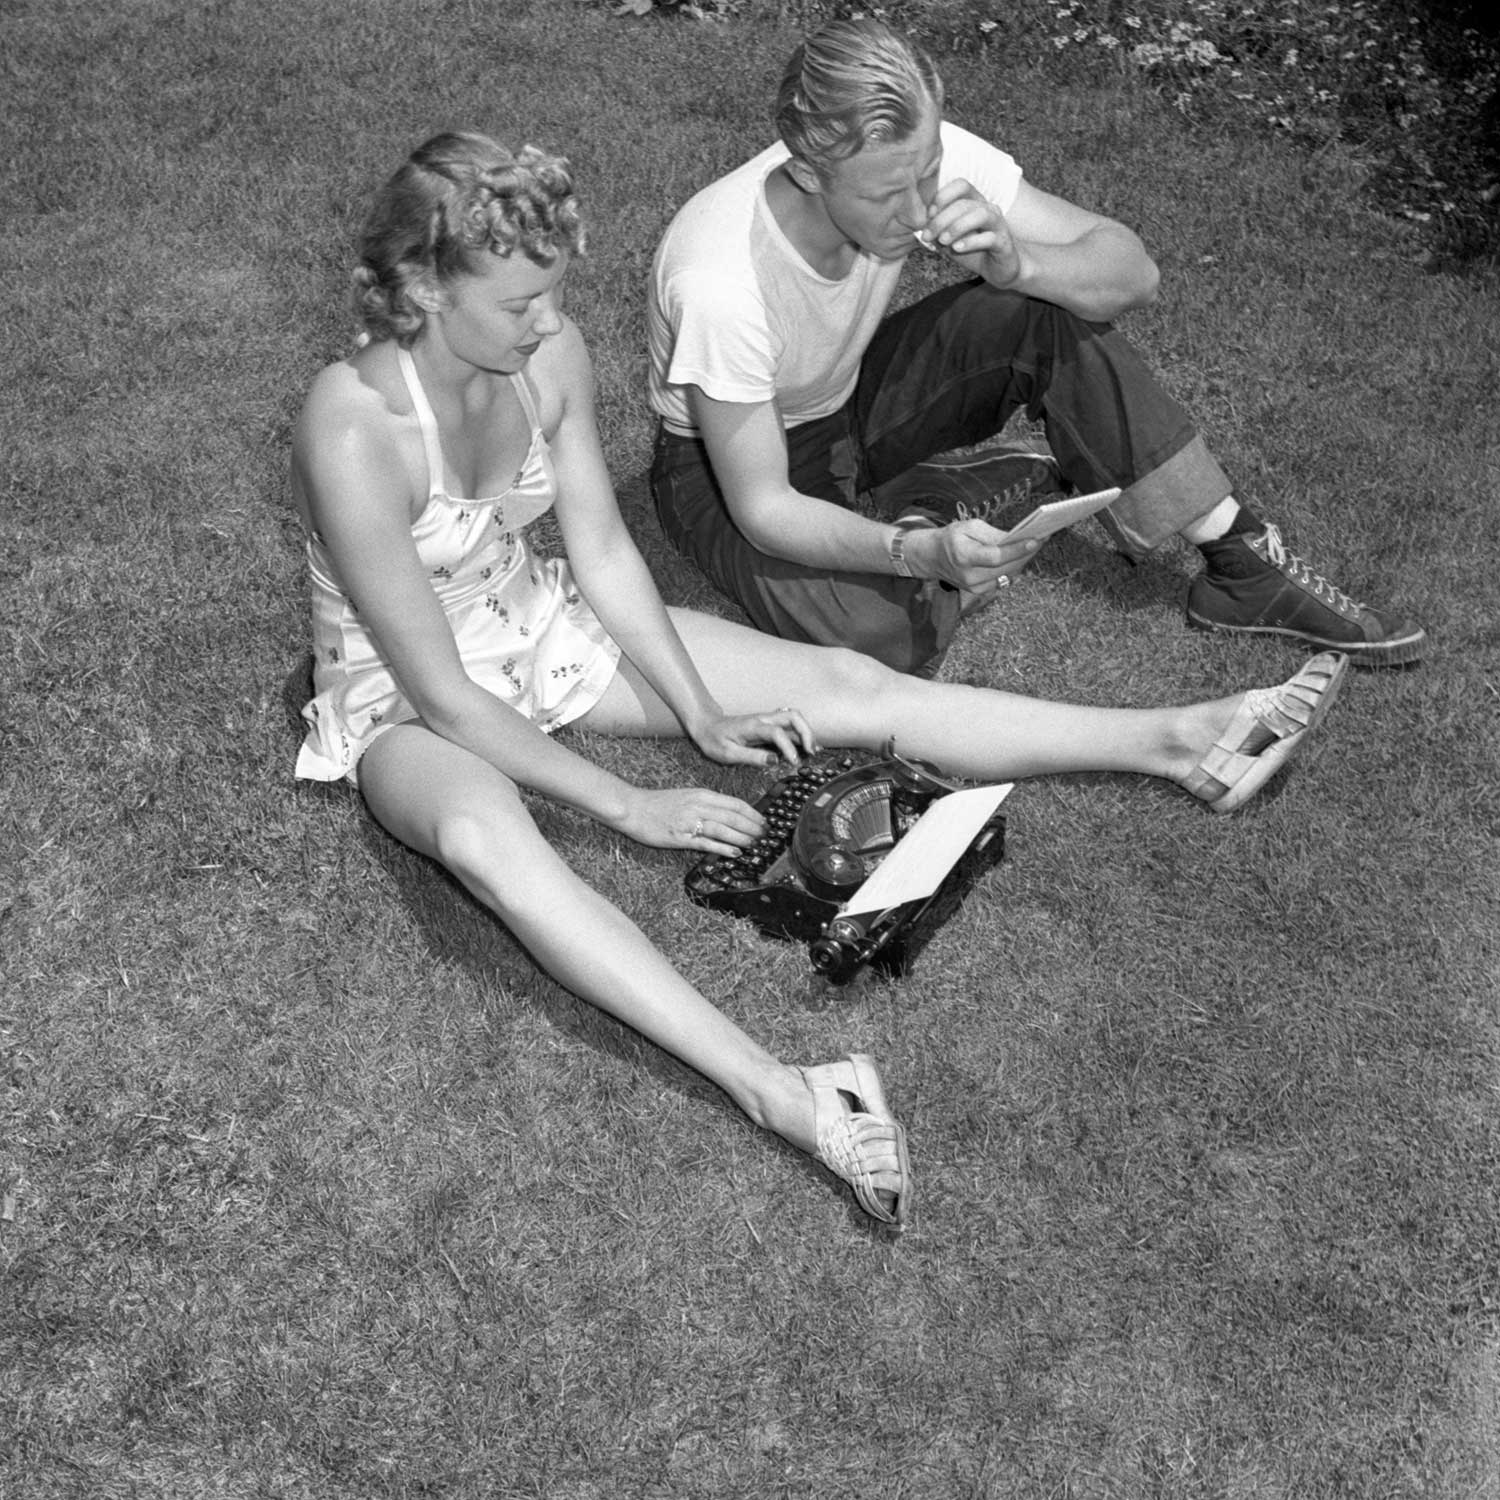 Black and white photo of man smoking and woman typing while sitting on the lawn